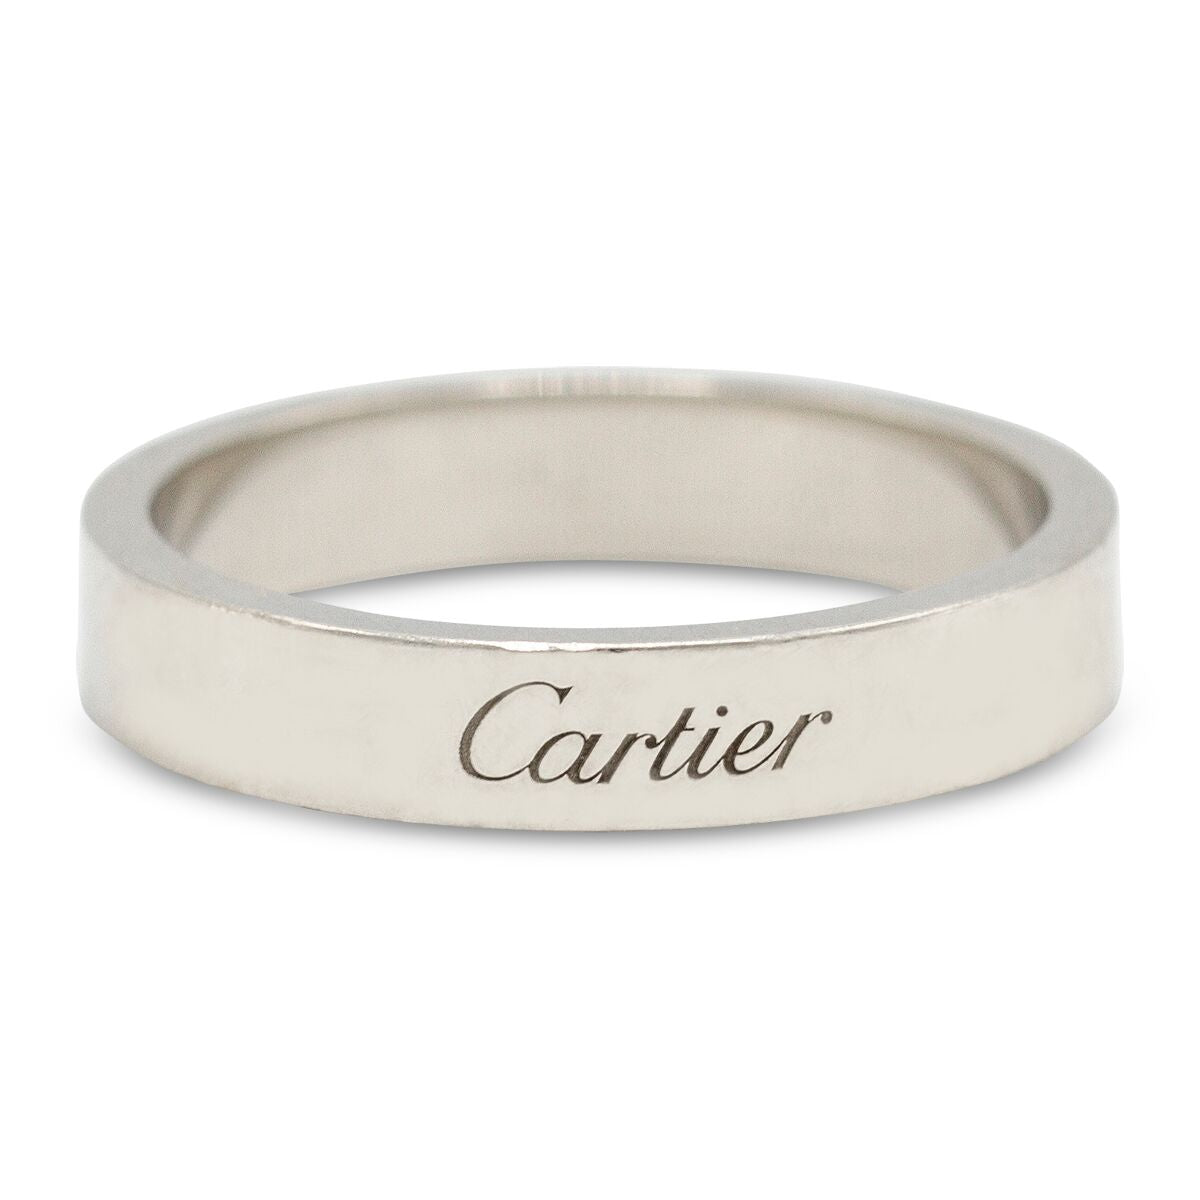 Cartier Woman's Platinum Band